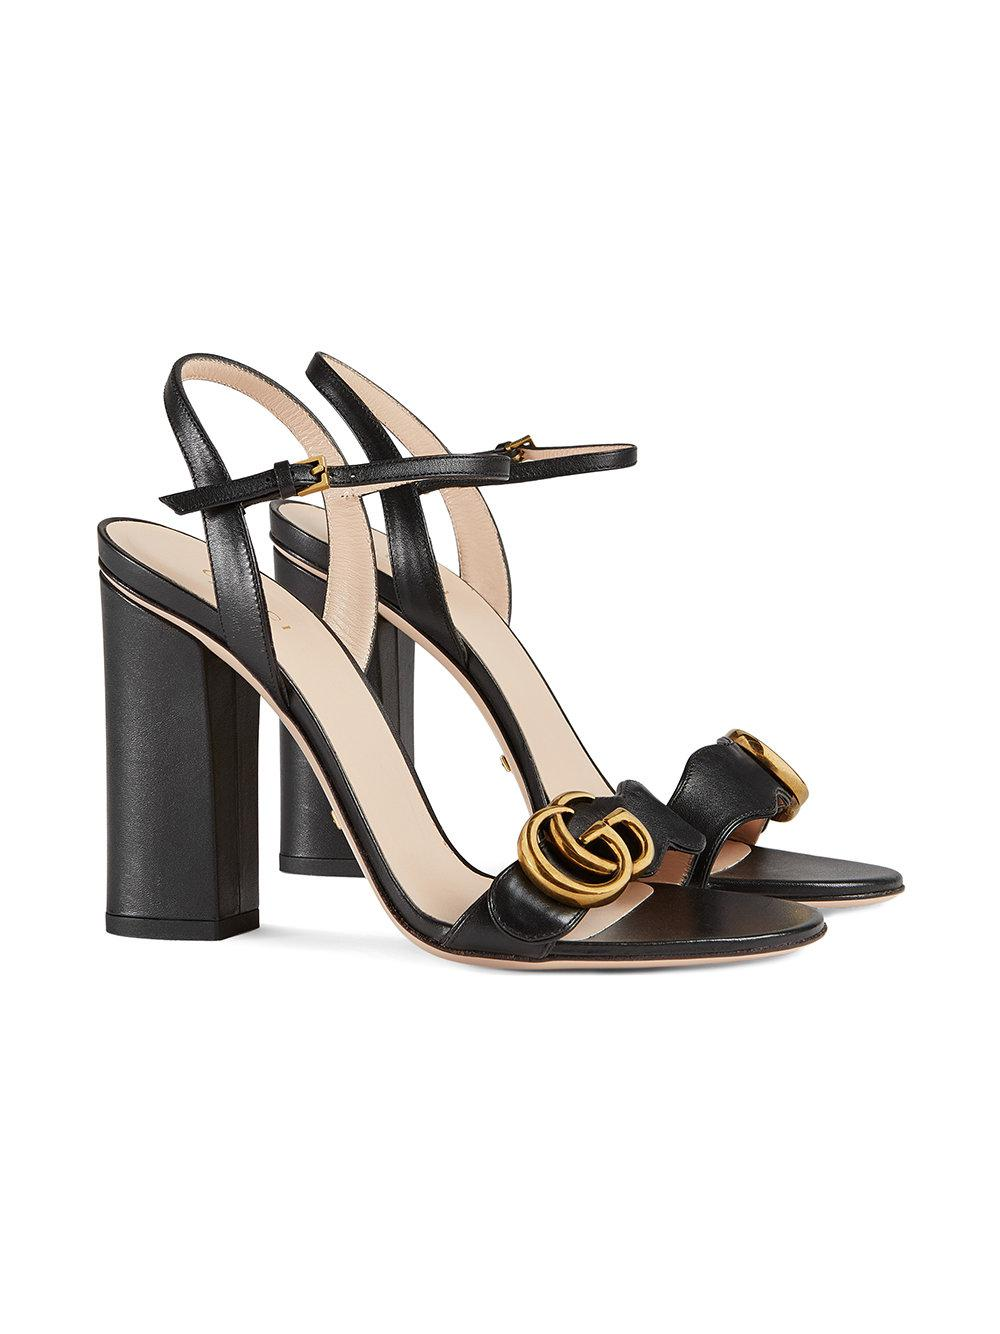 973dc3a3ed0ab Gucci Leather Sandals in Black - Save 9.243697478991592% - Lyst